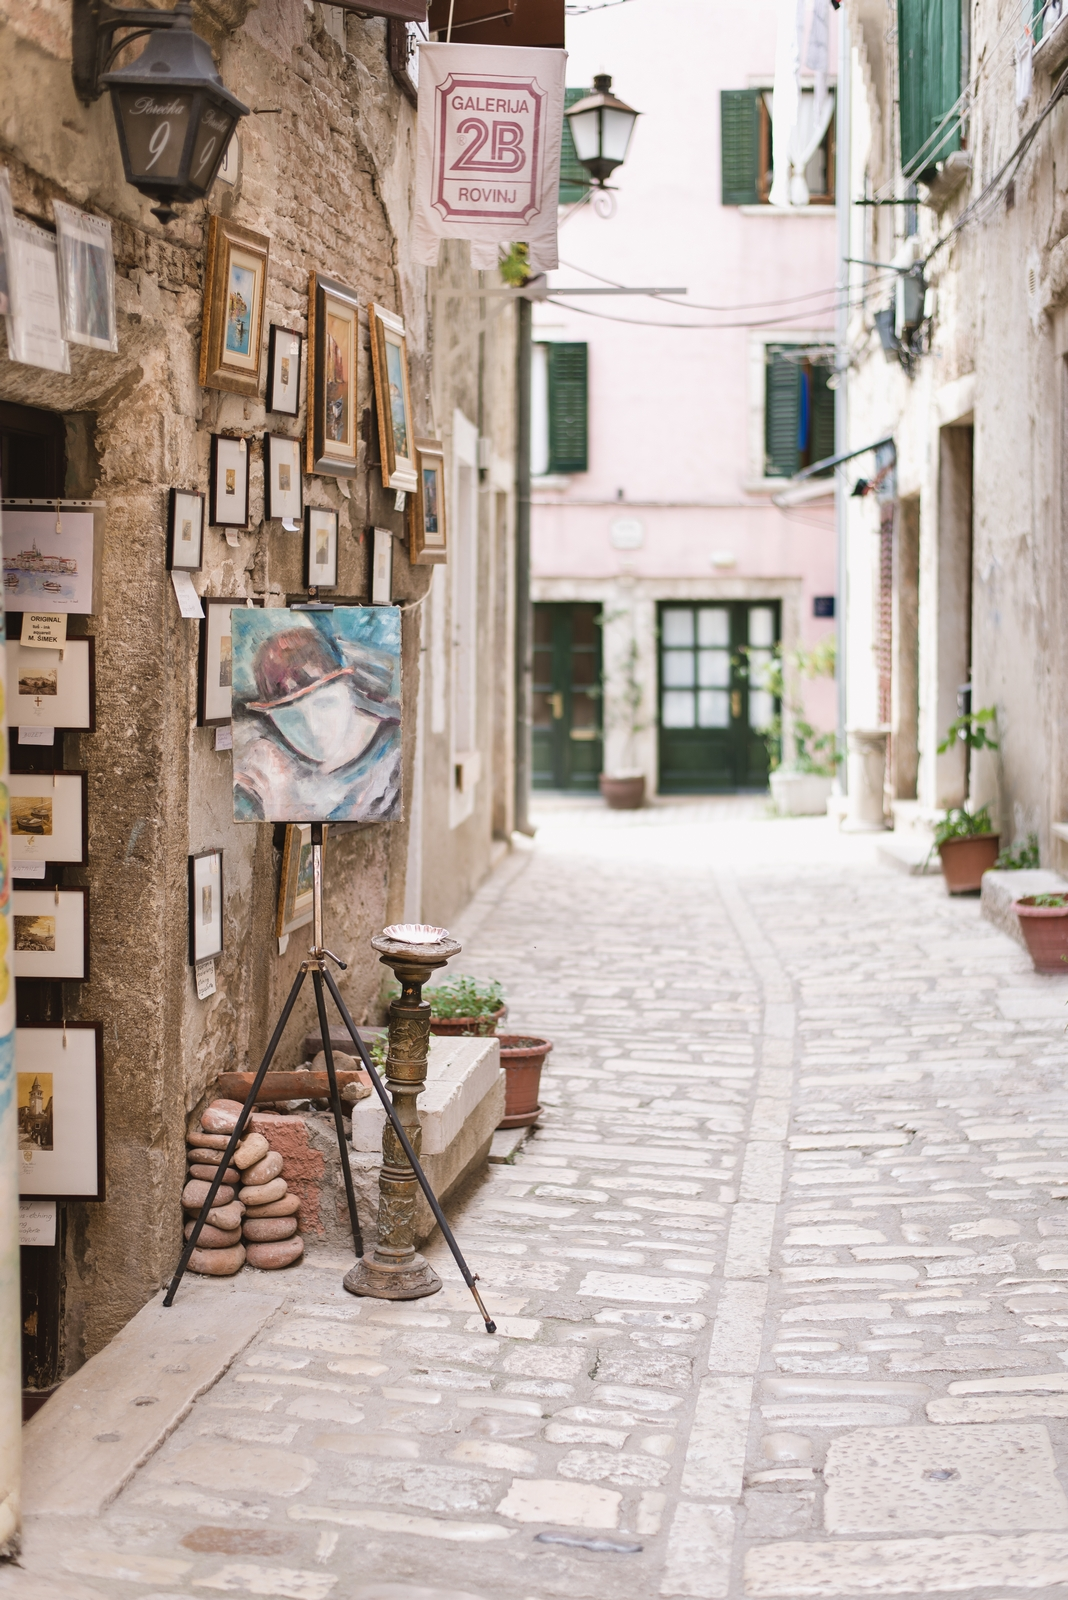 Art gallery in the old town of Rovinj, Istria, Croatia - from travel blog http://Epepa.eu